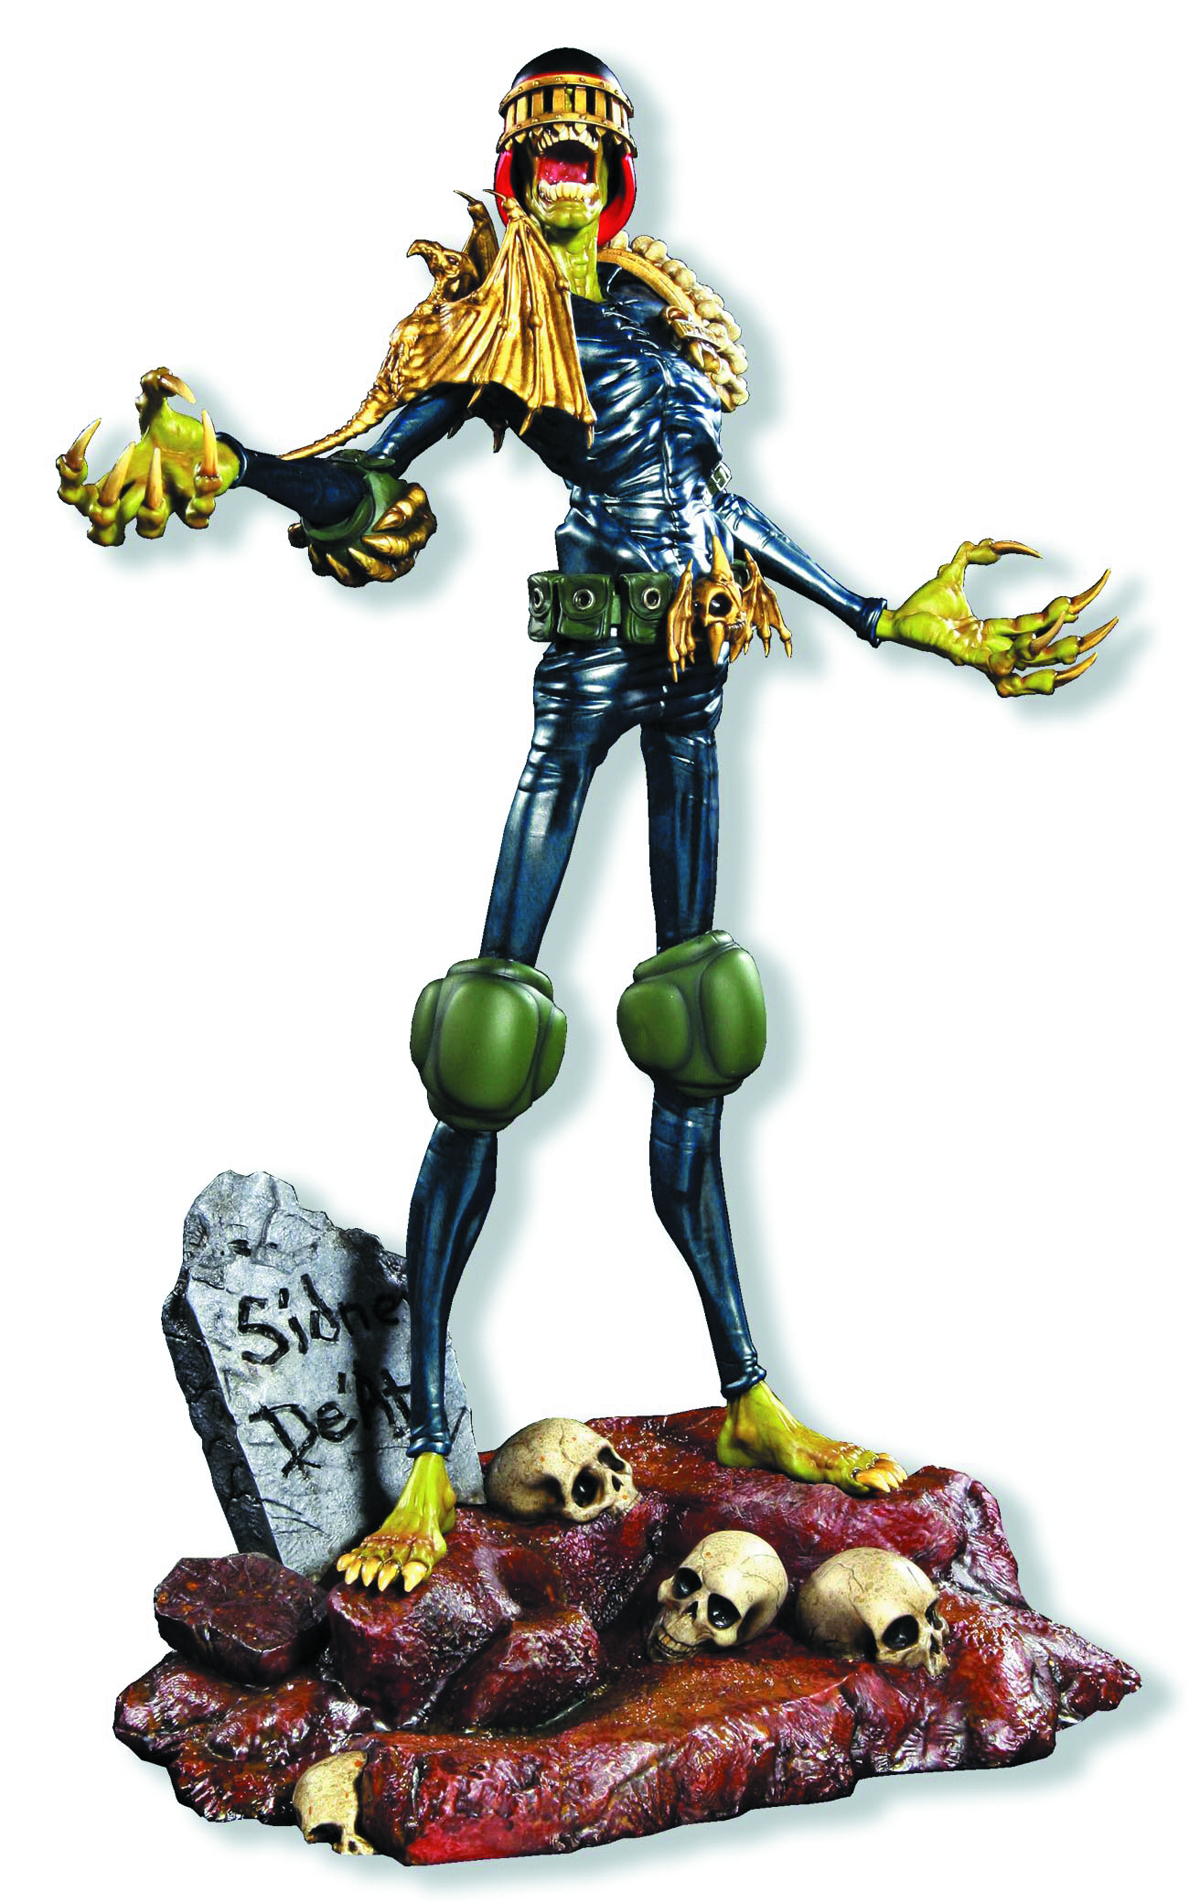 JUDGE DREDD 1/4 SCALE JUDGE DEATH STATUE